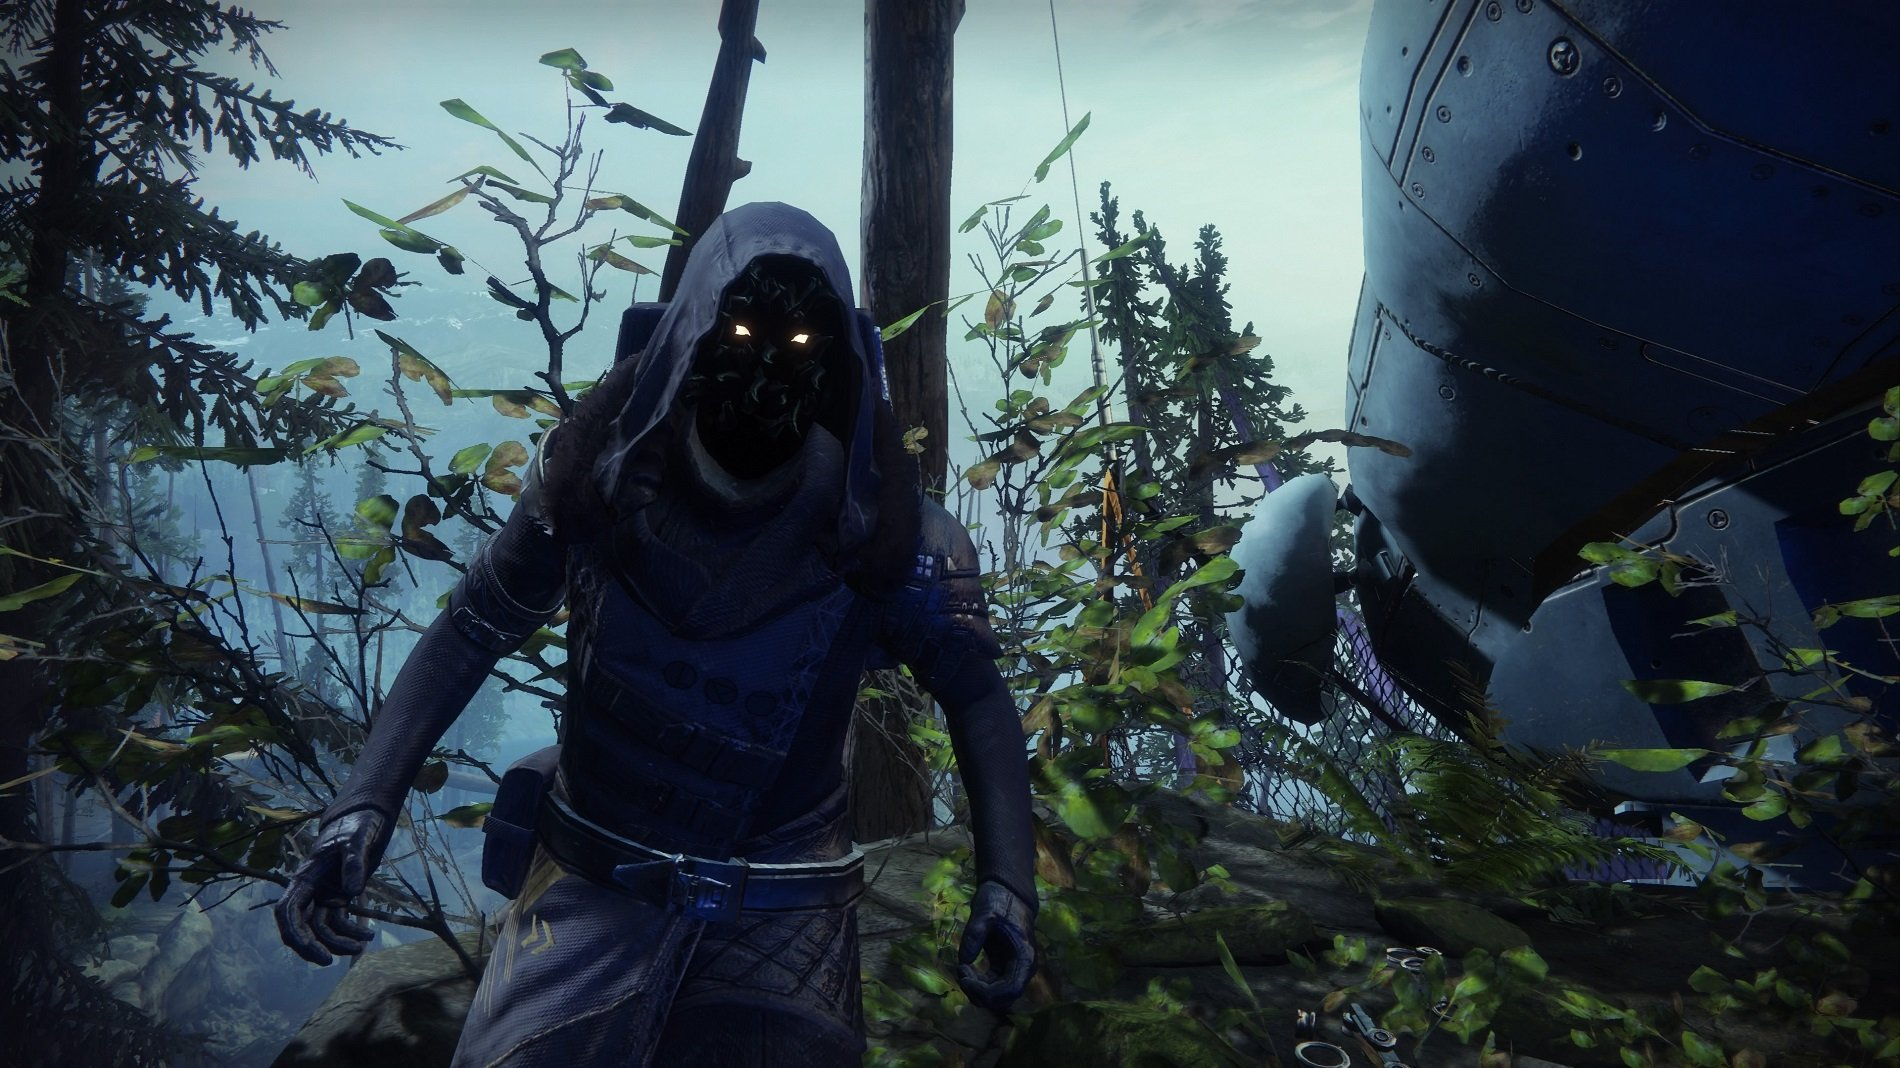 Where to find Xur in Destiny 2 - May 8, 2020